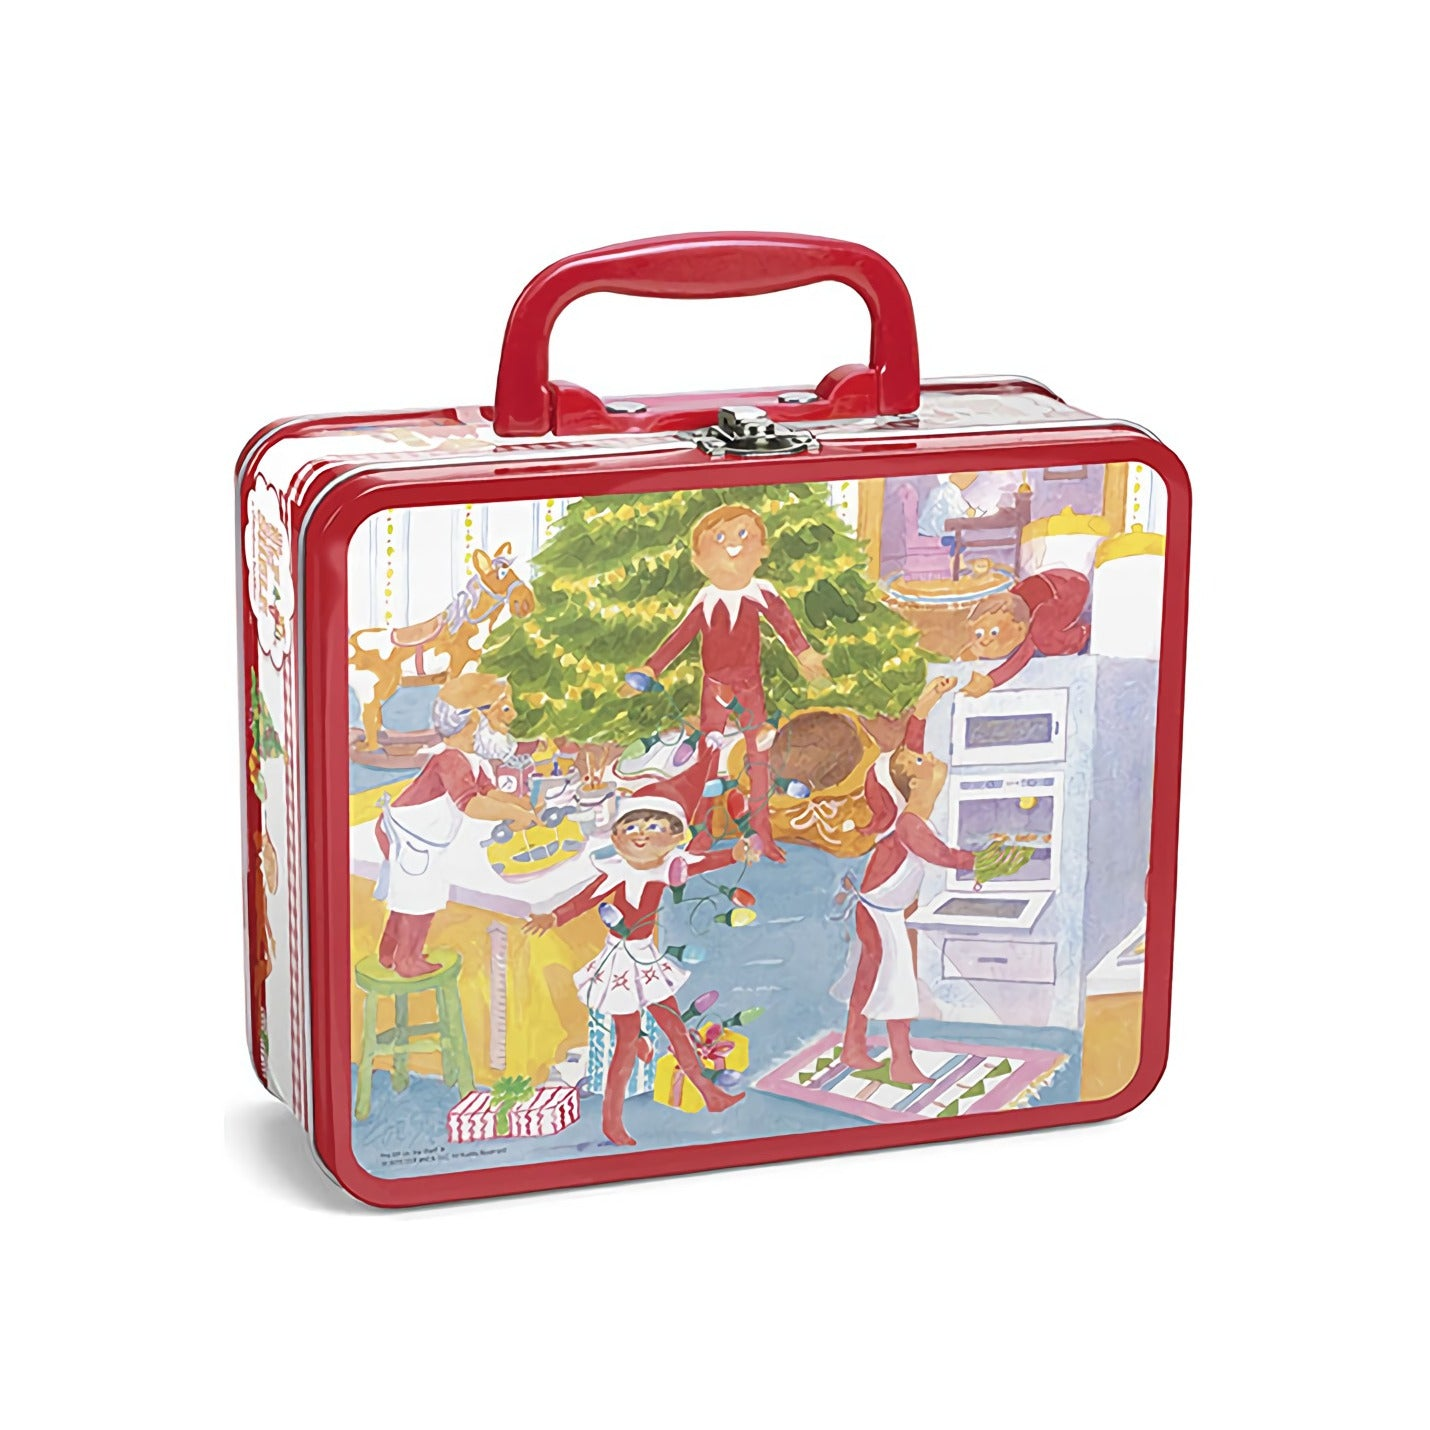 The Elf On The Shelf Lunch Box Elf Ver. With 48 Piece Puzzle